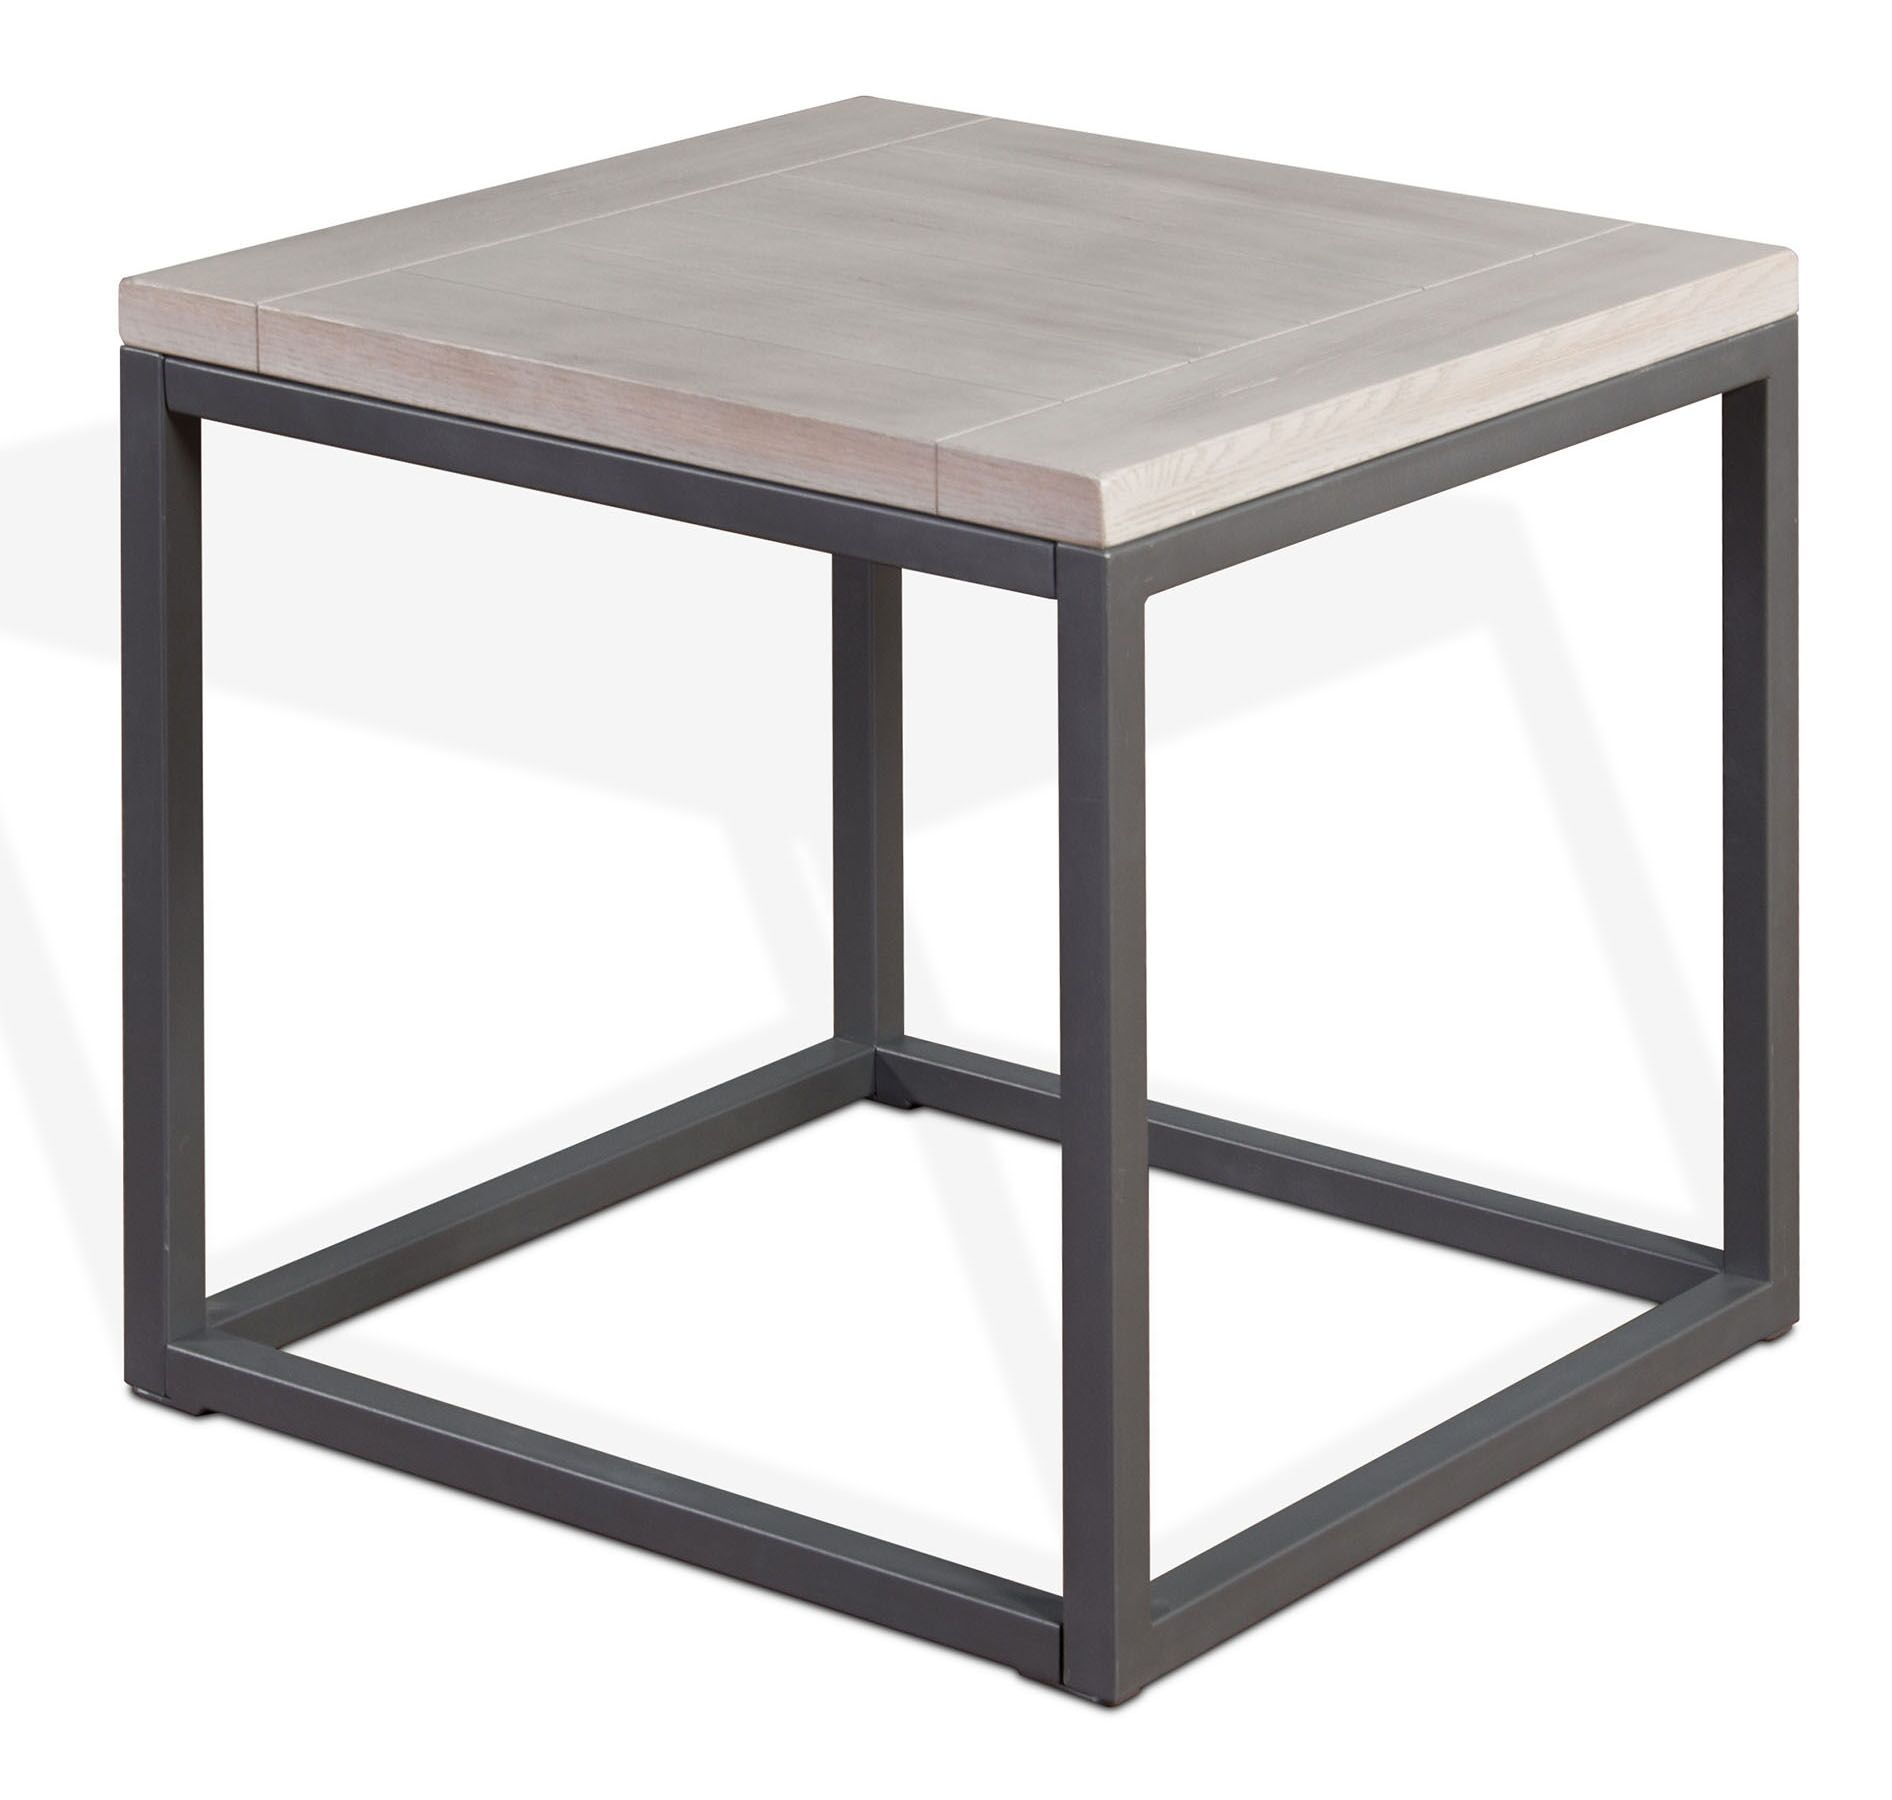 Kierra End Table